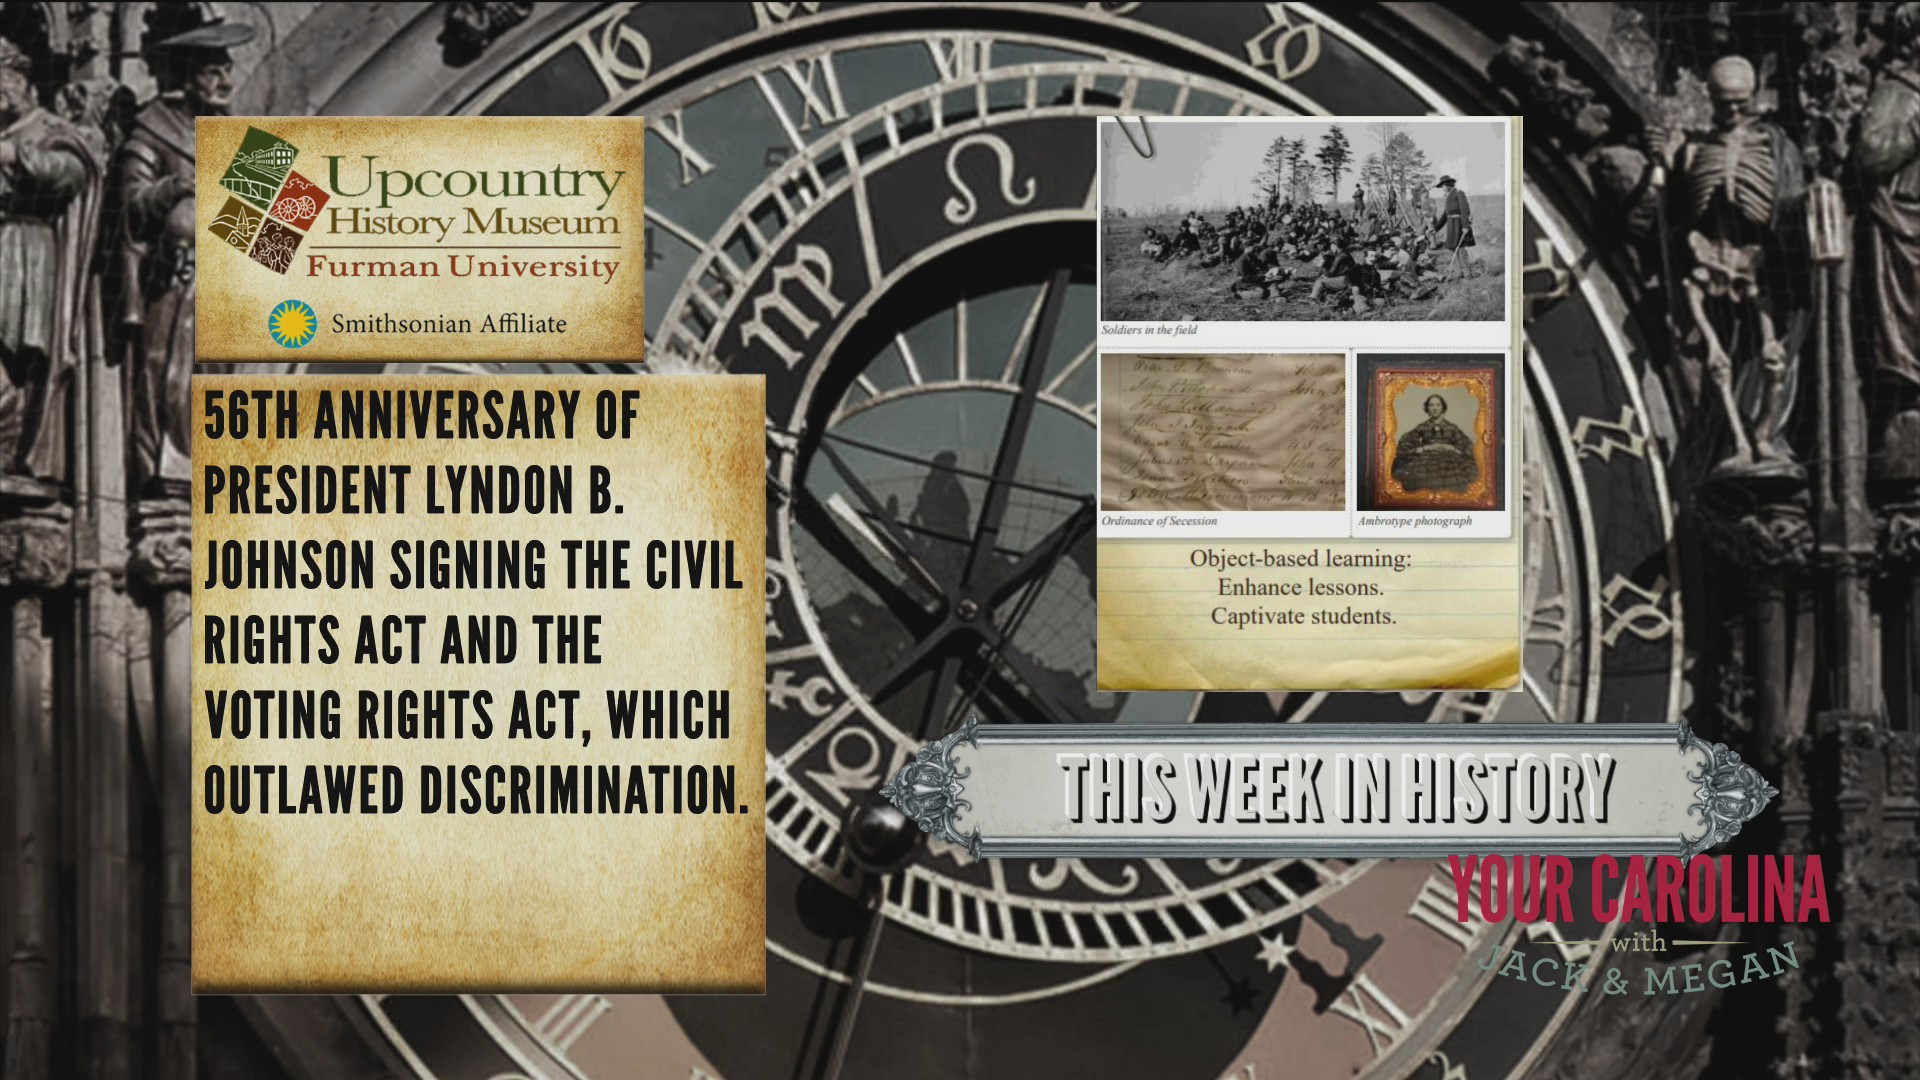 This Week in History - Civil Rights Act